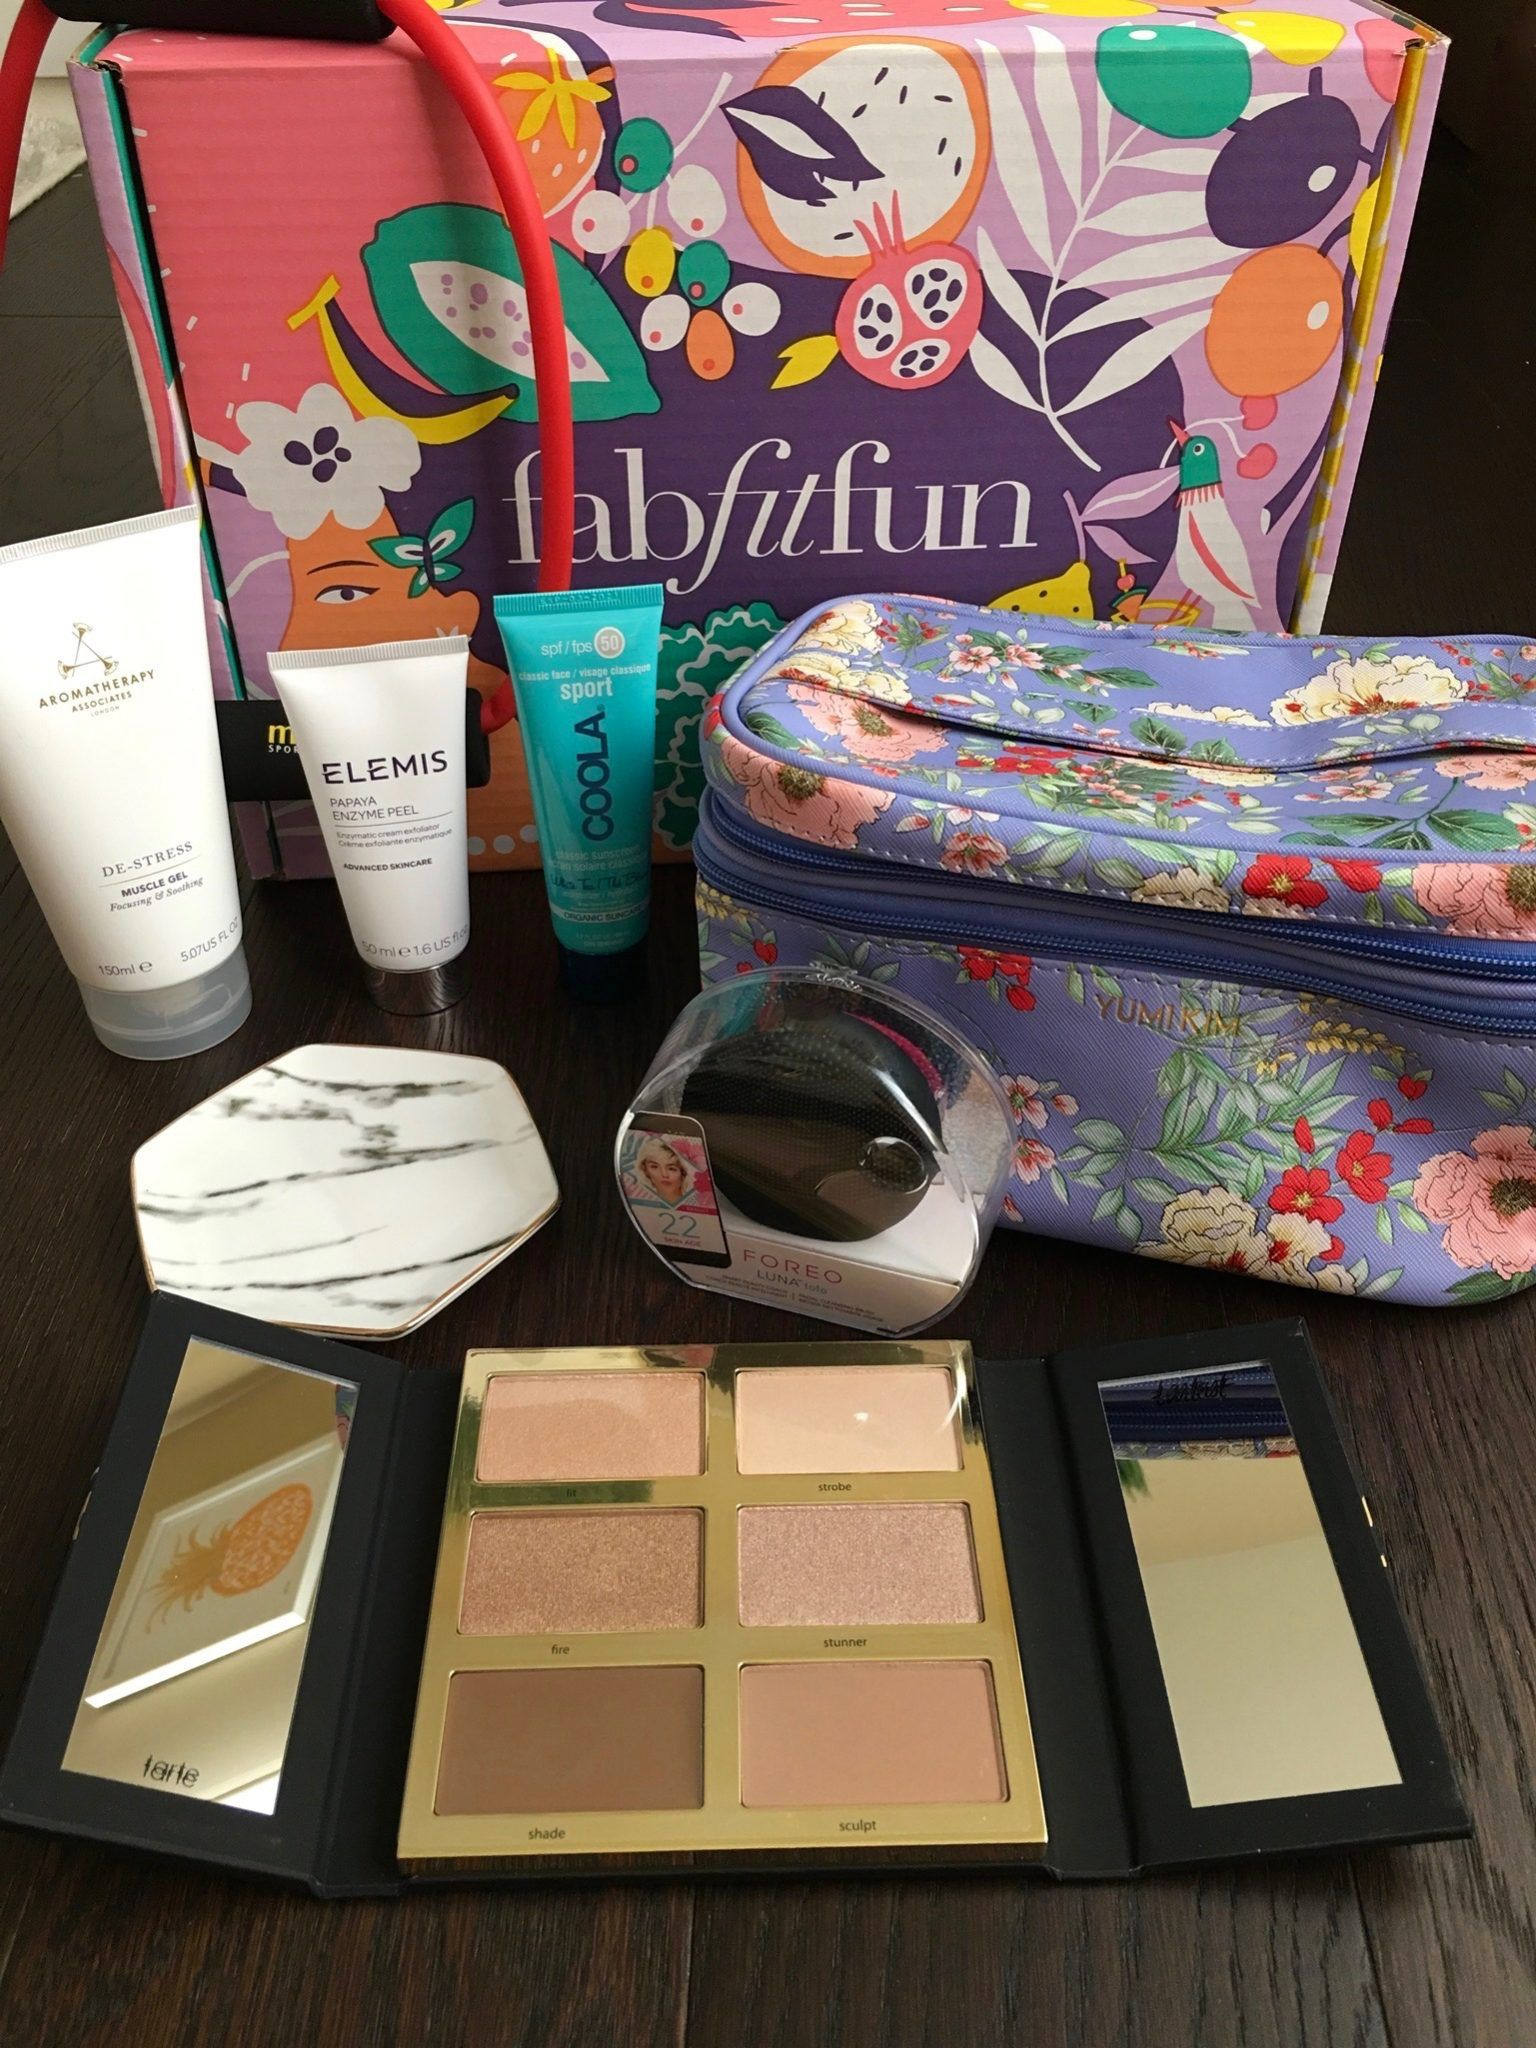 Fabfitfun summer 2018 review coupon code fabfitfun pinterest fabfitfun summer 2018 review coupon code fandeluxe Image collections